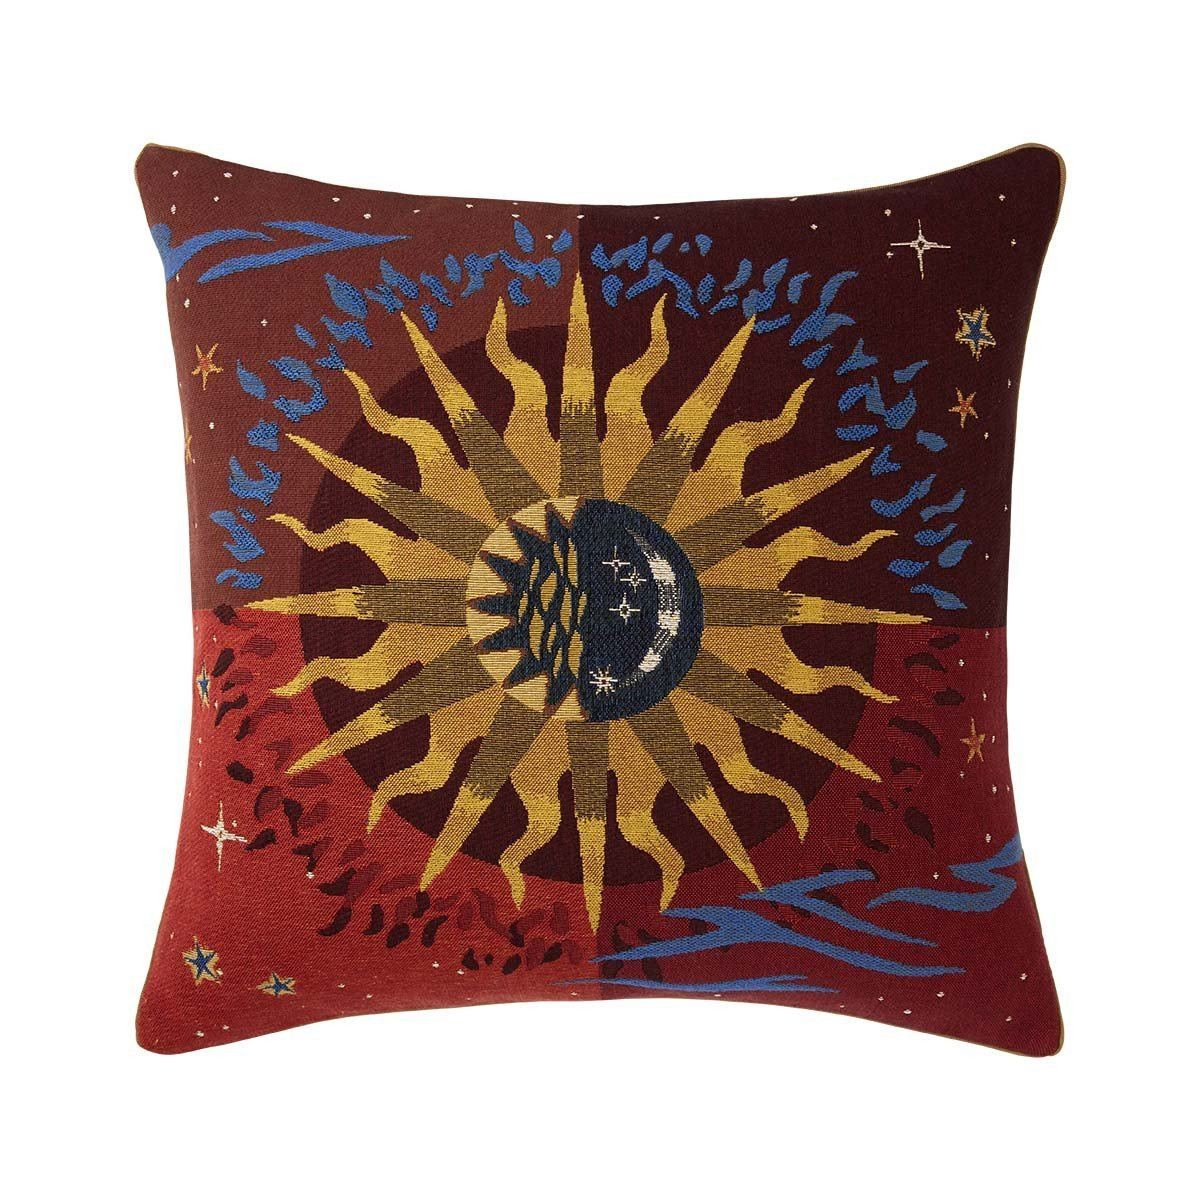 Soleil Rubis Decorative Pillow by Iosis